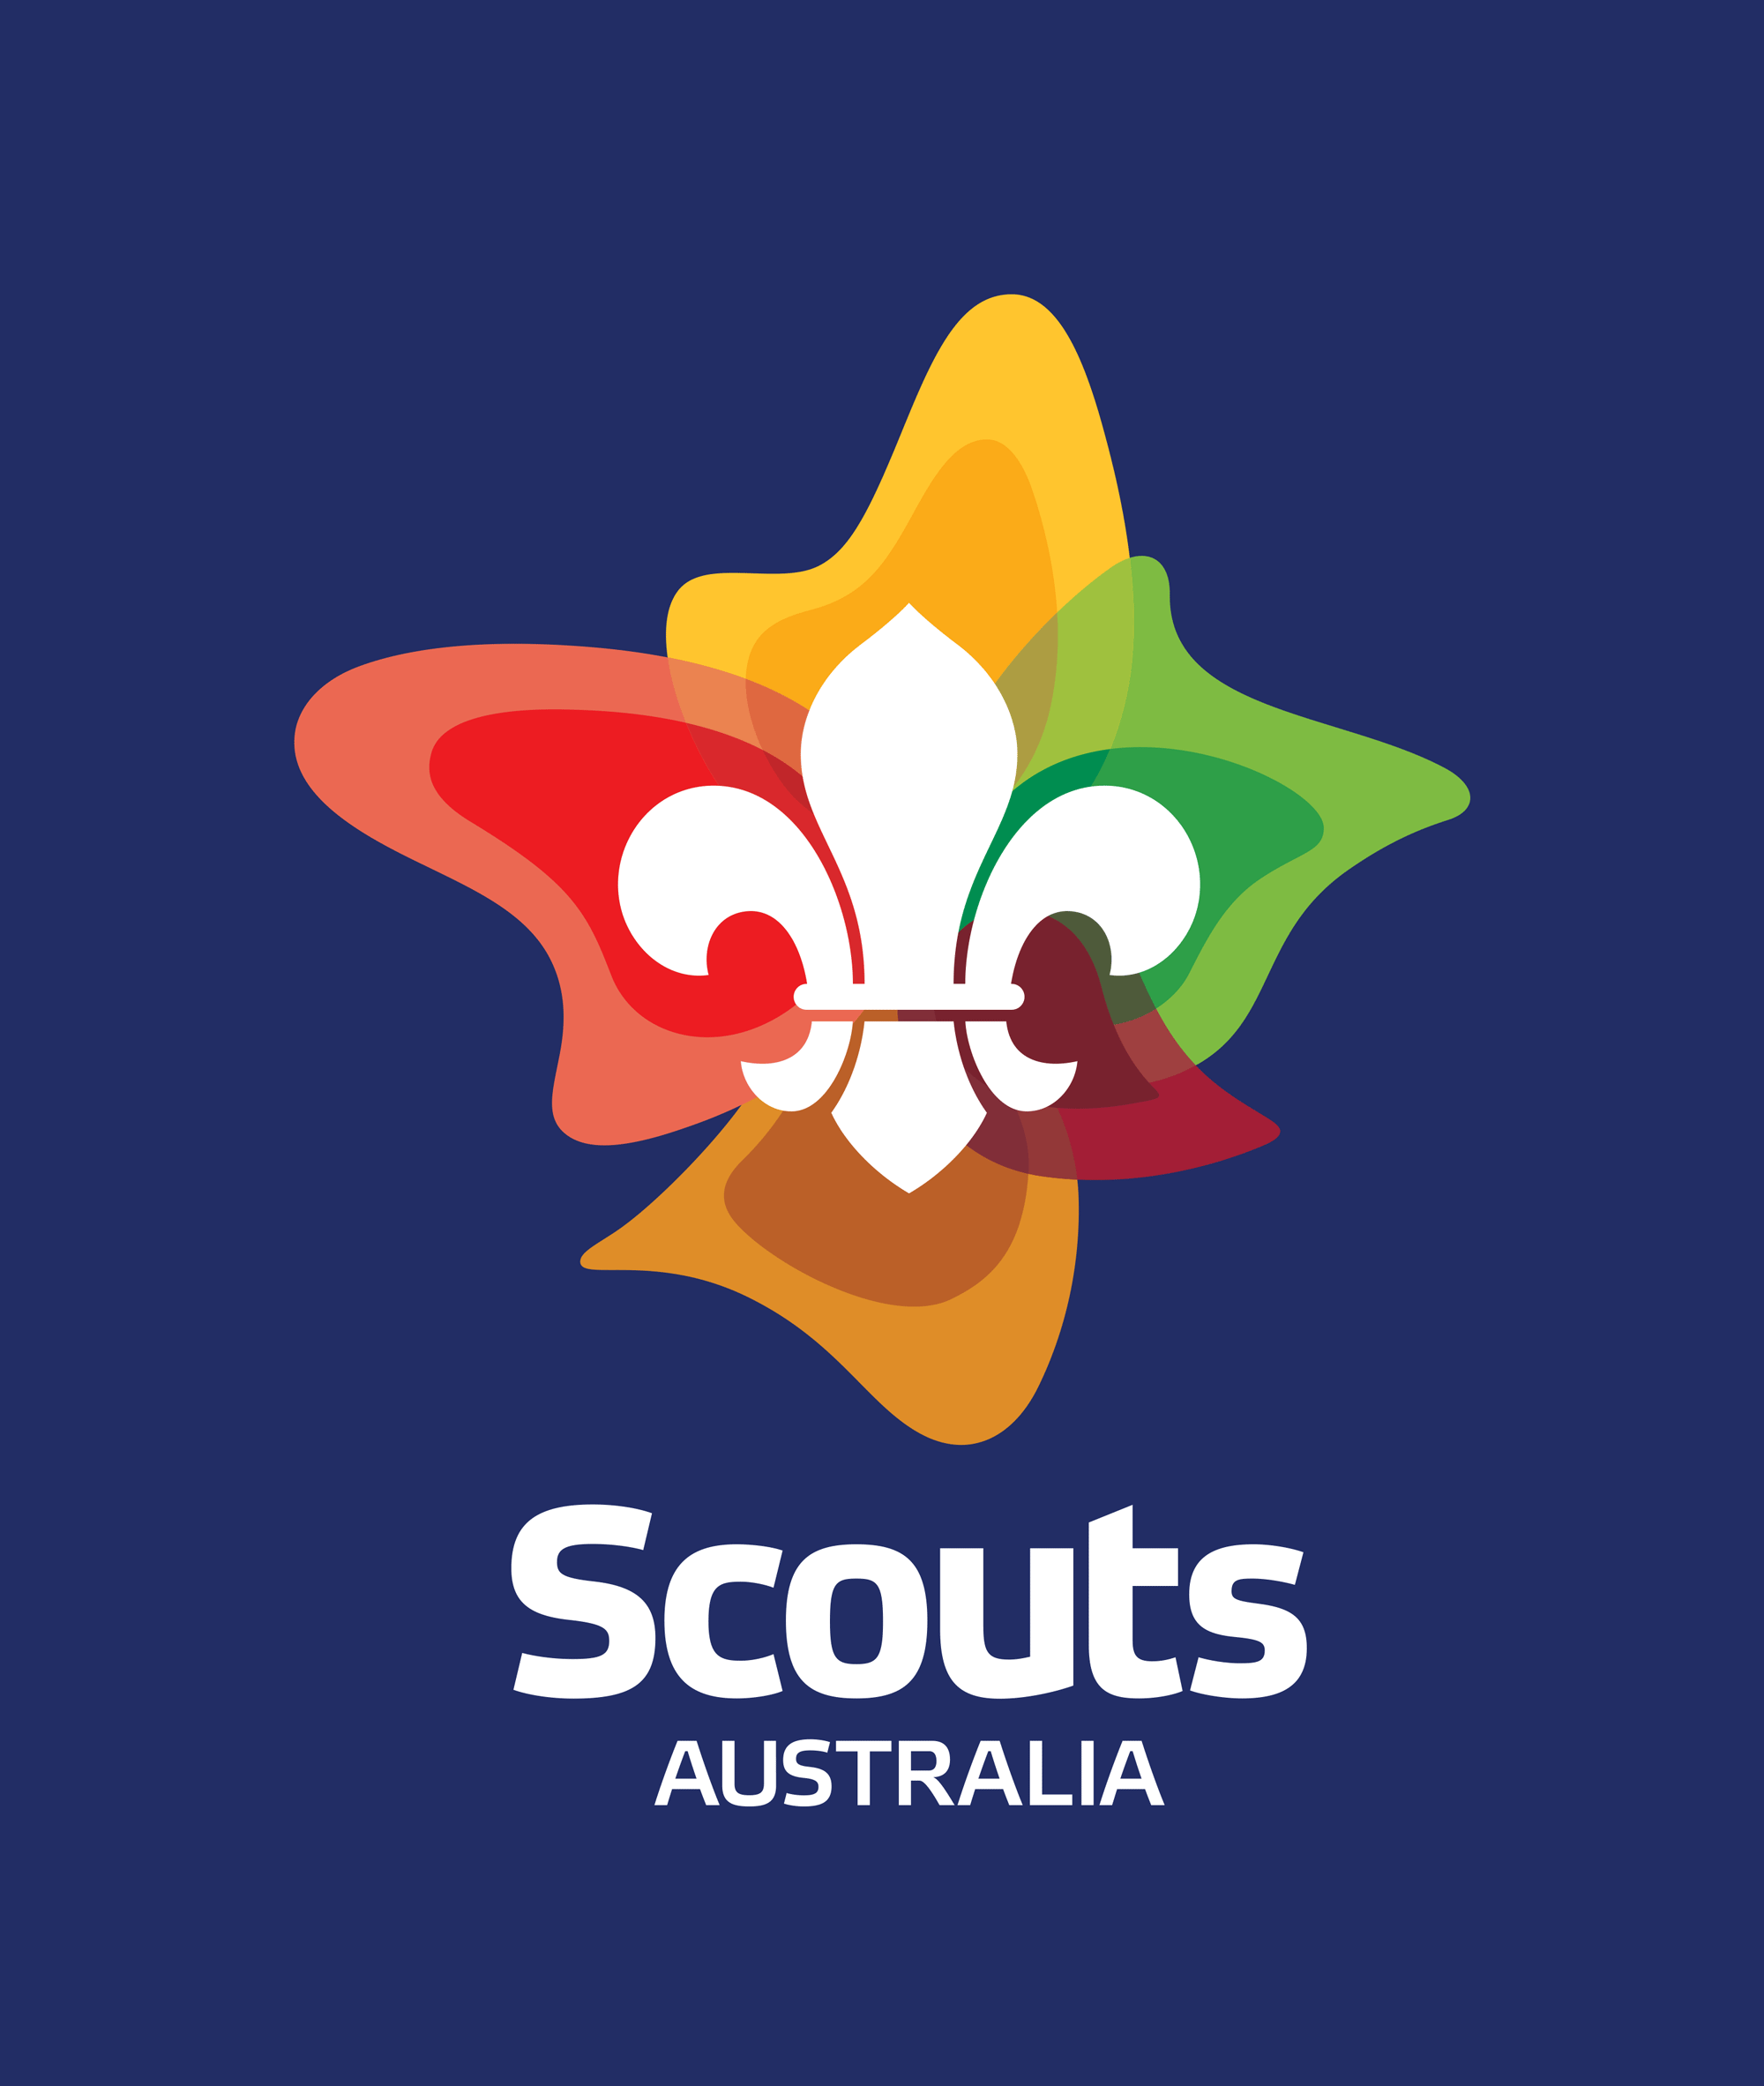 New Logo and Identity for Scouts Australia by Cato Brand Partners